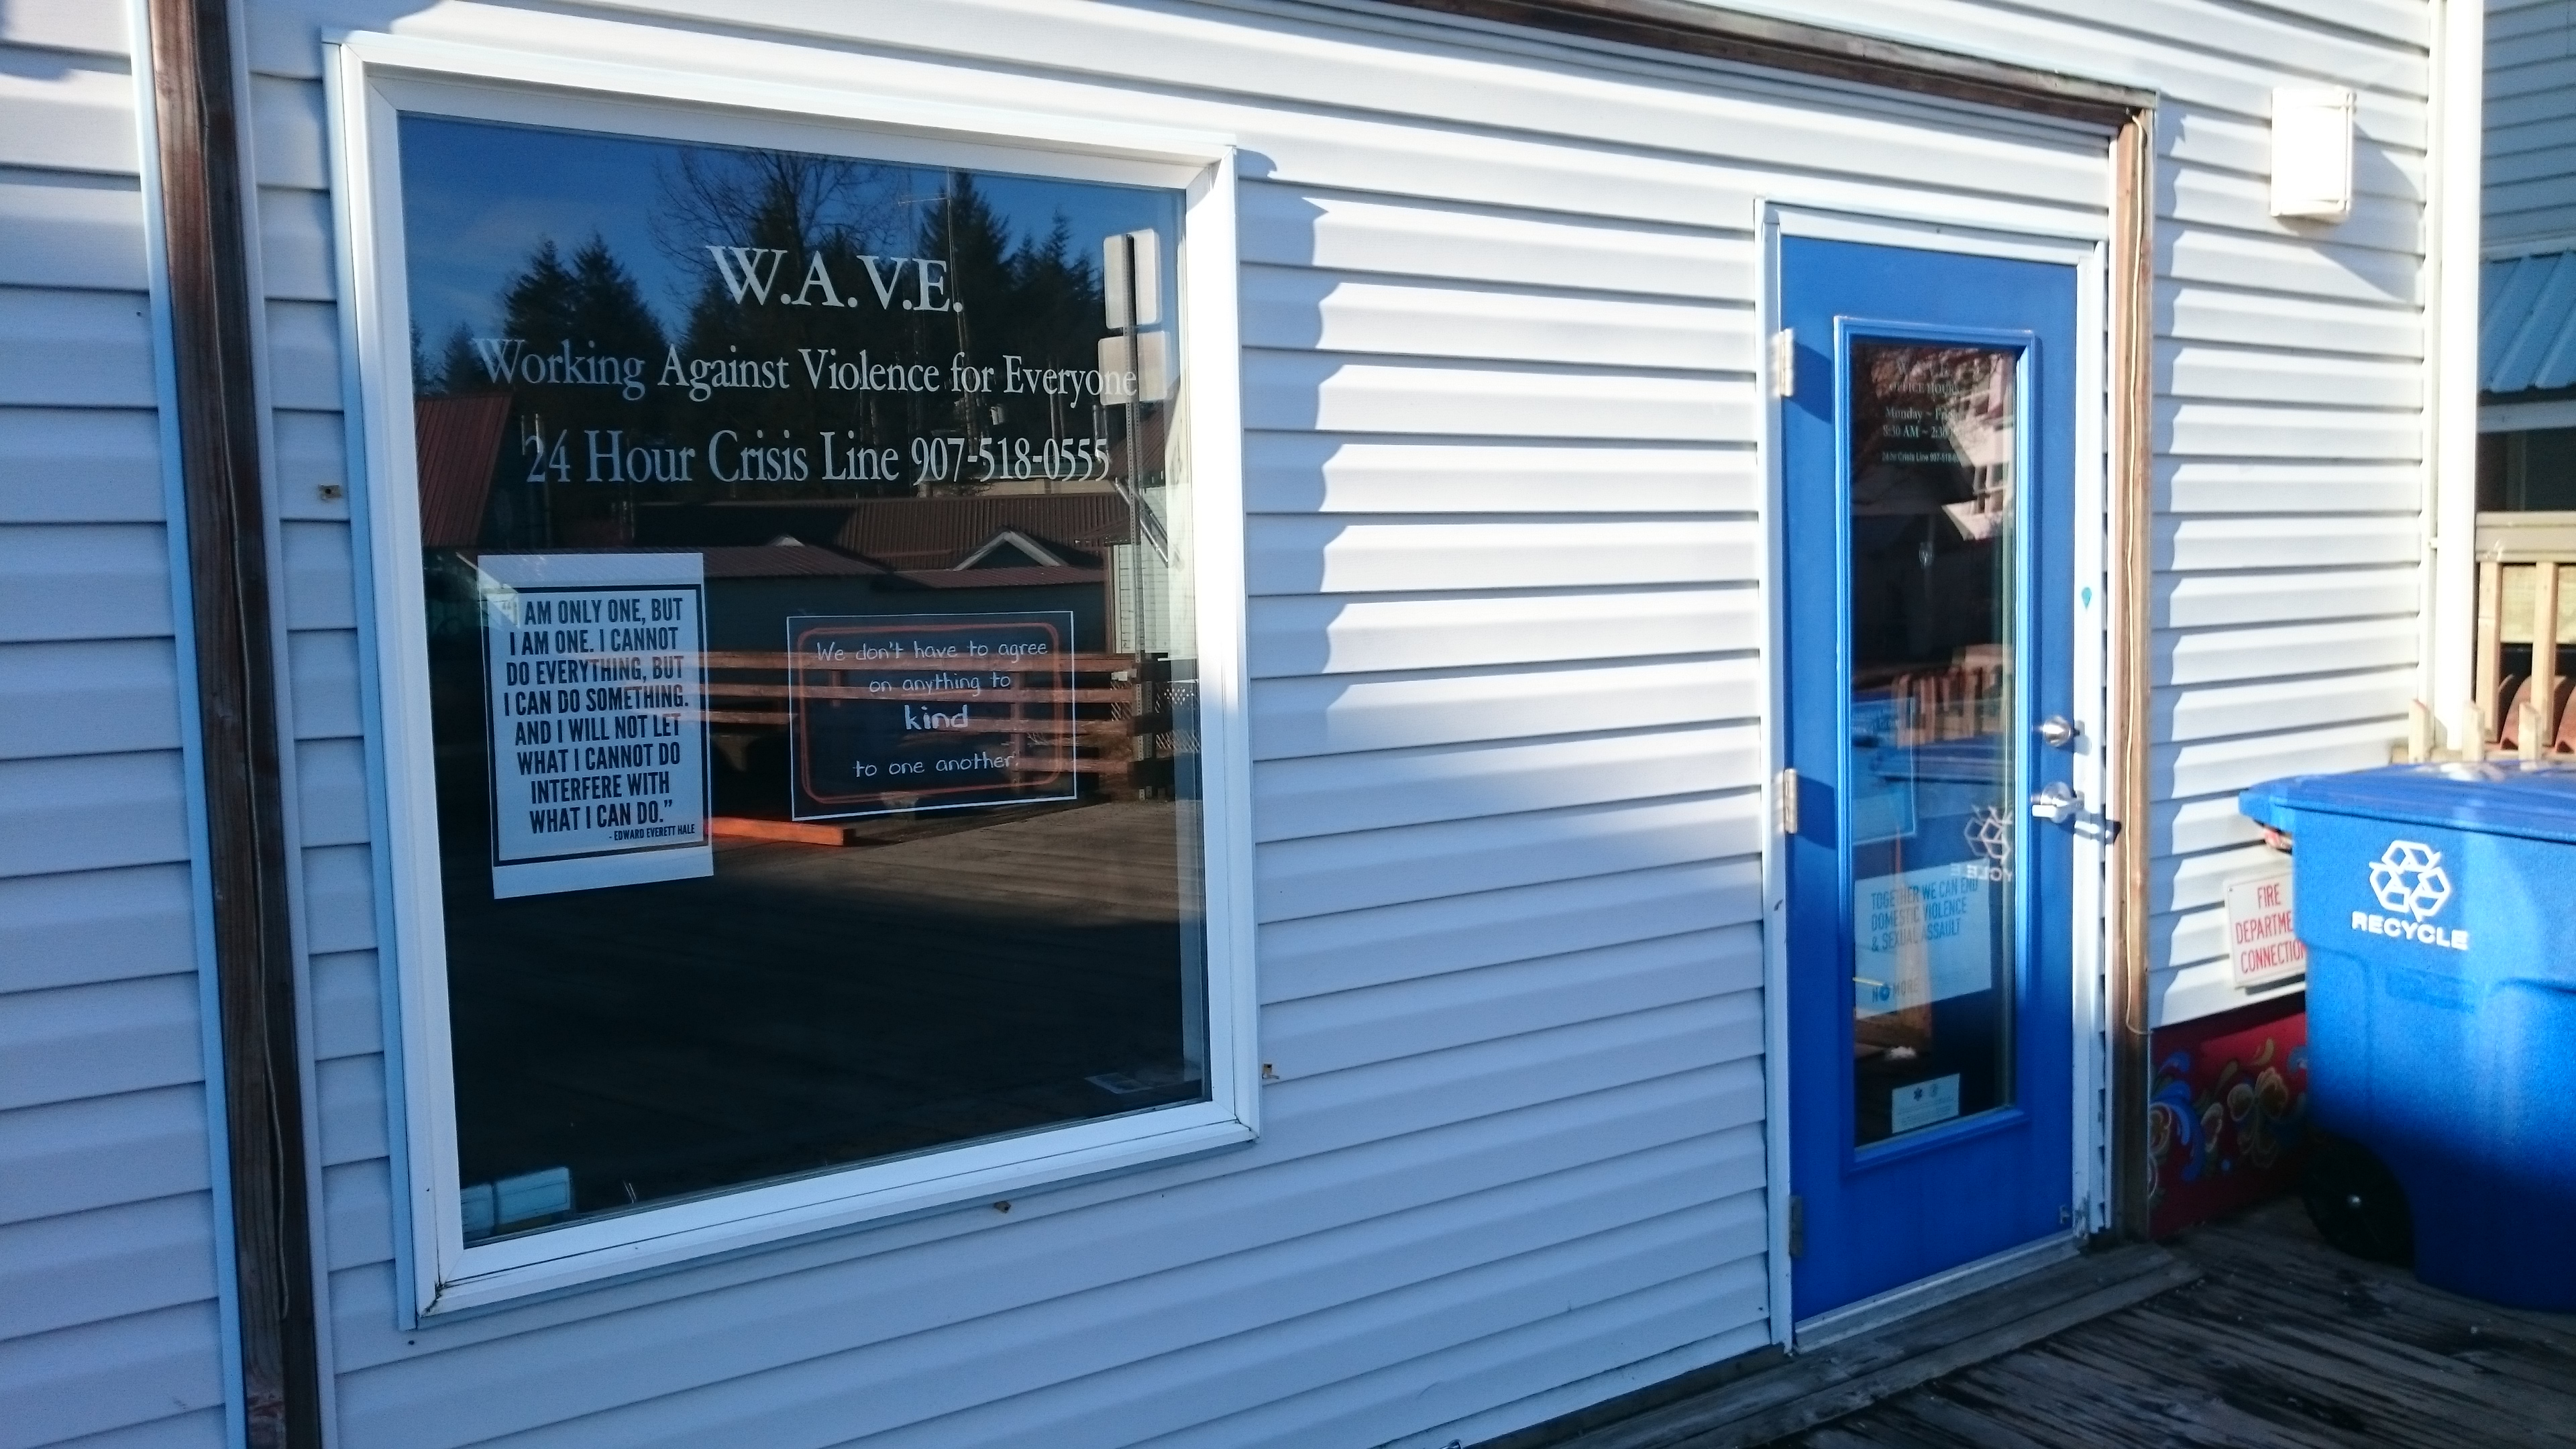 The WAVE office is on Sing Lee Alley near the Sons of Norway hall. Photo courtesy of WAVE